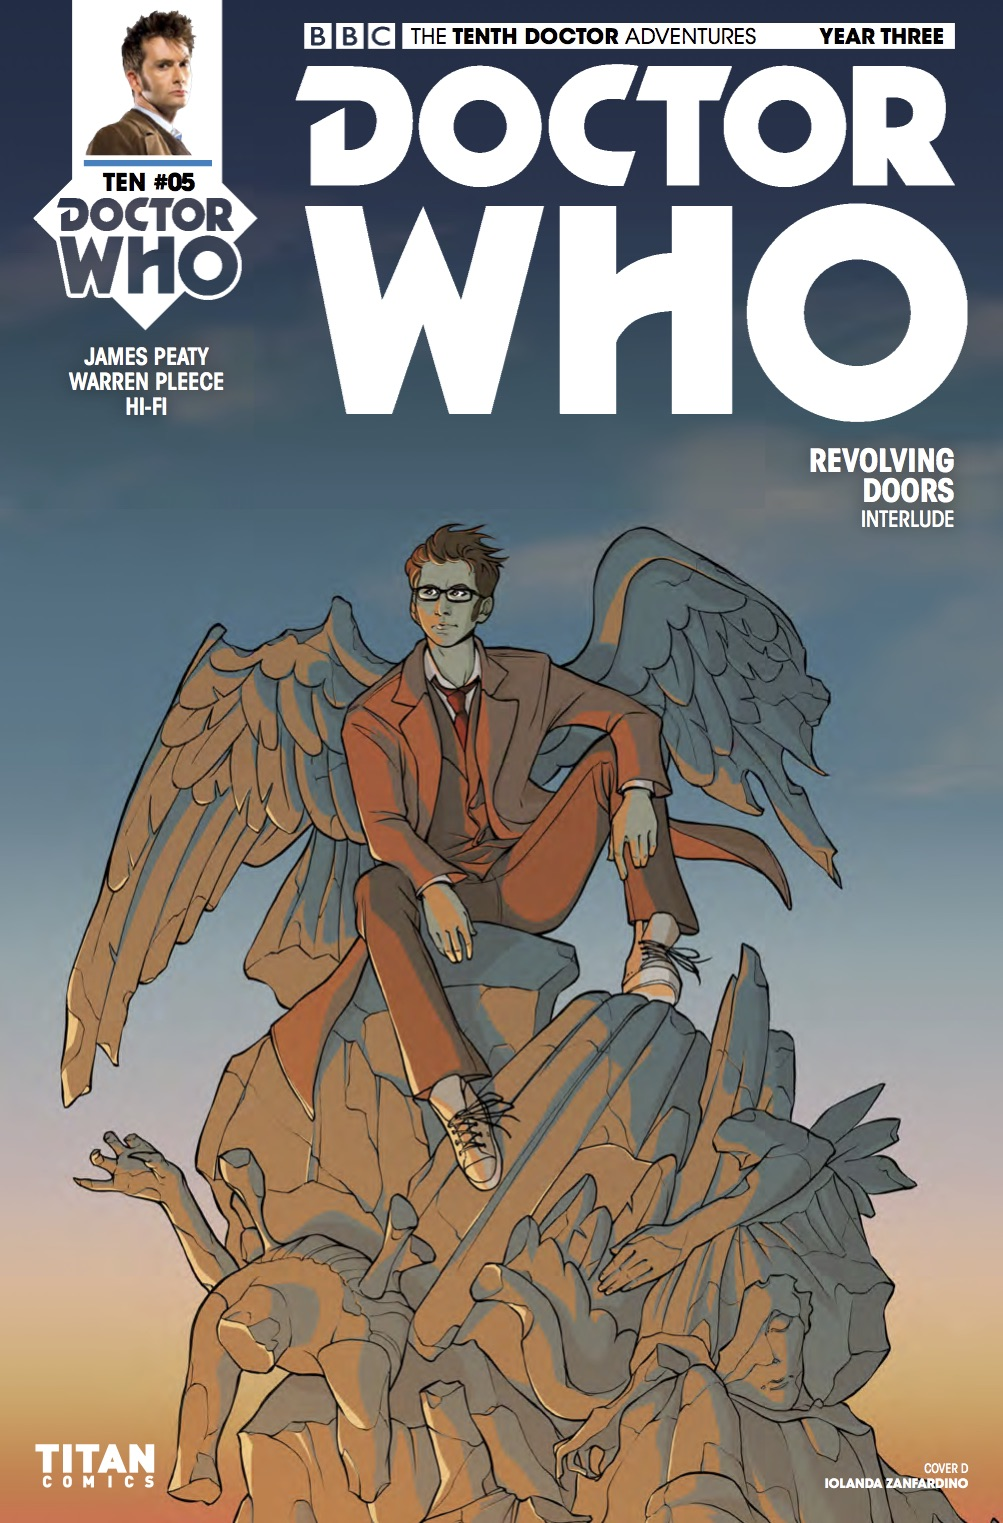 TENTH_DOCTOR 3.5 Cover D (Credit: Titan / Iolanda Zanfardino)